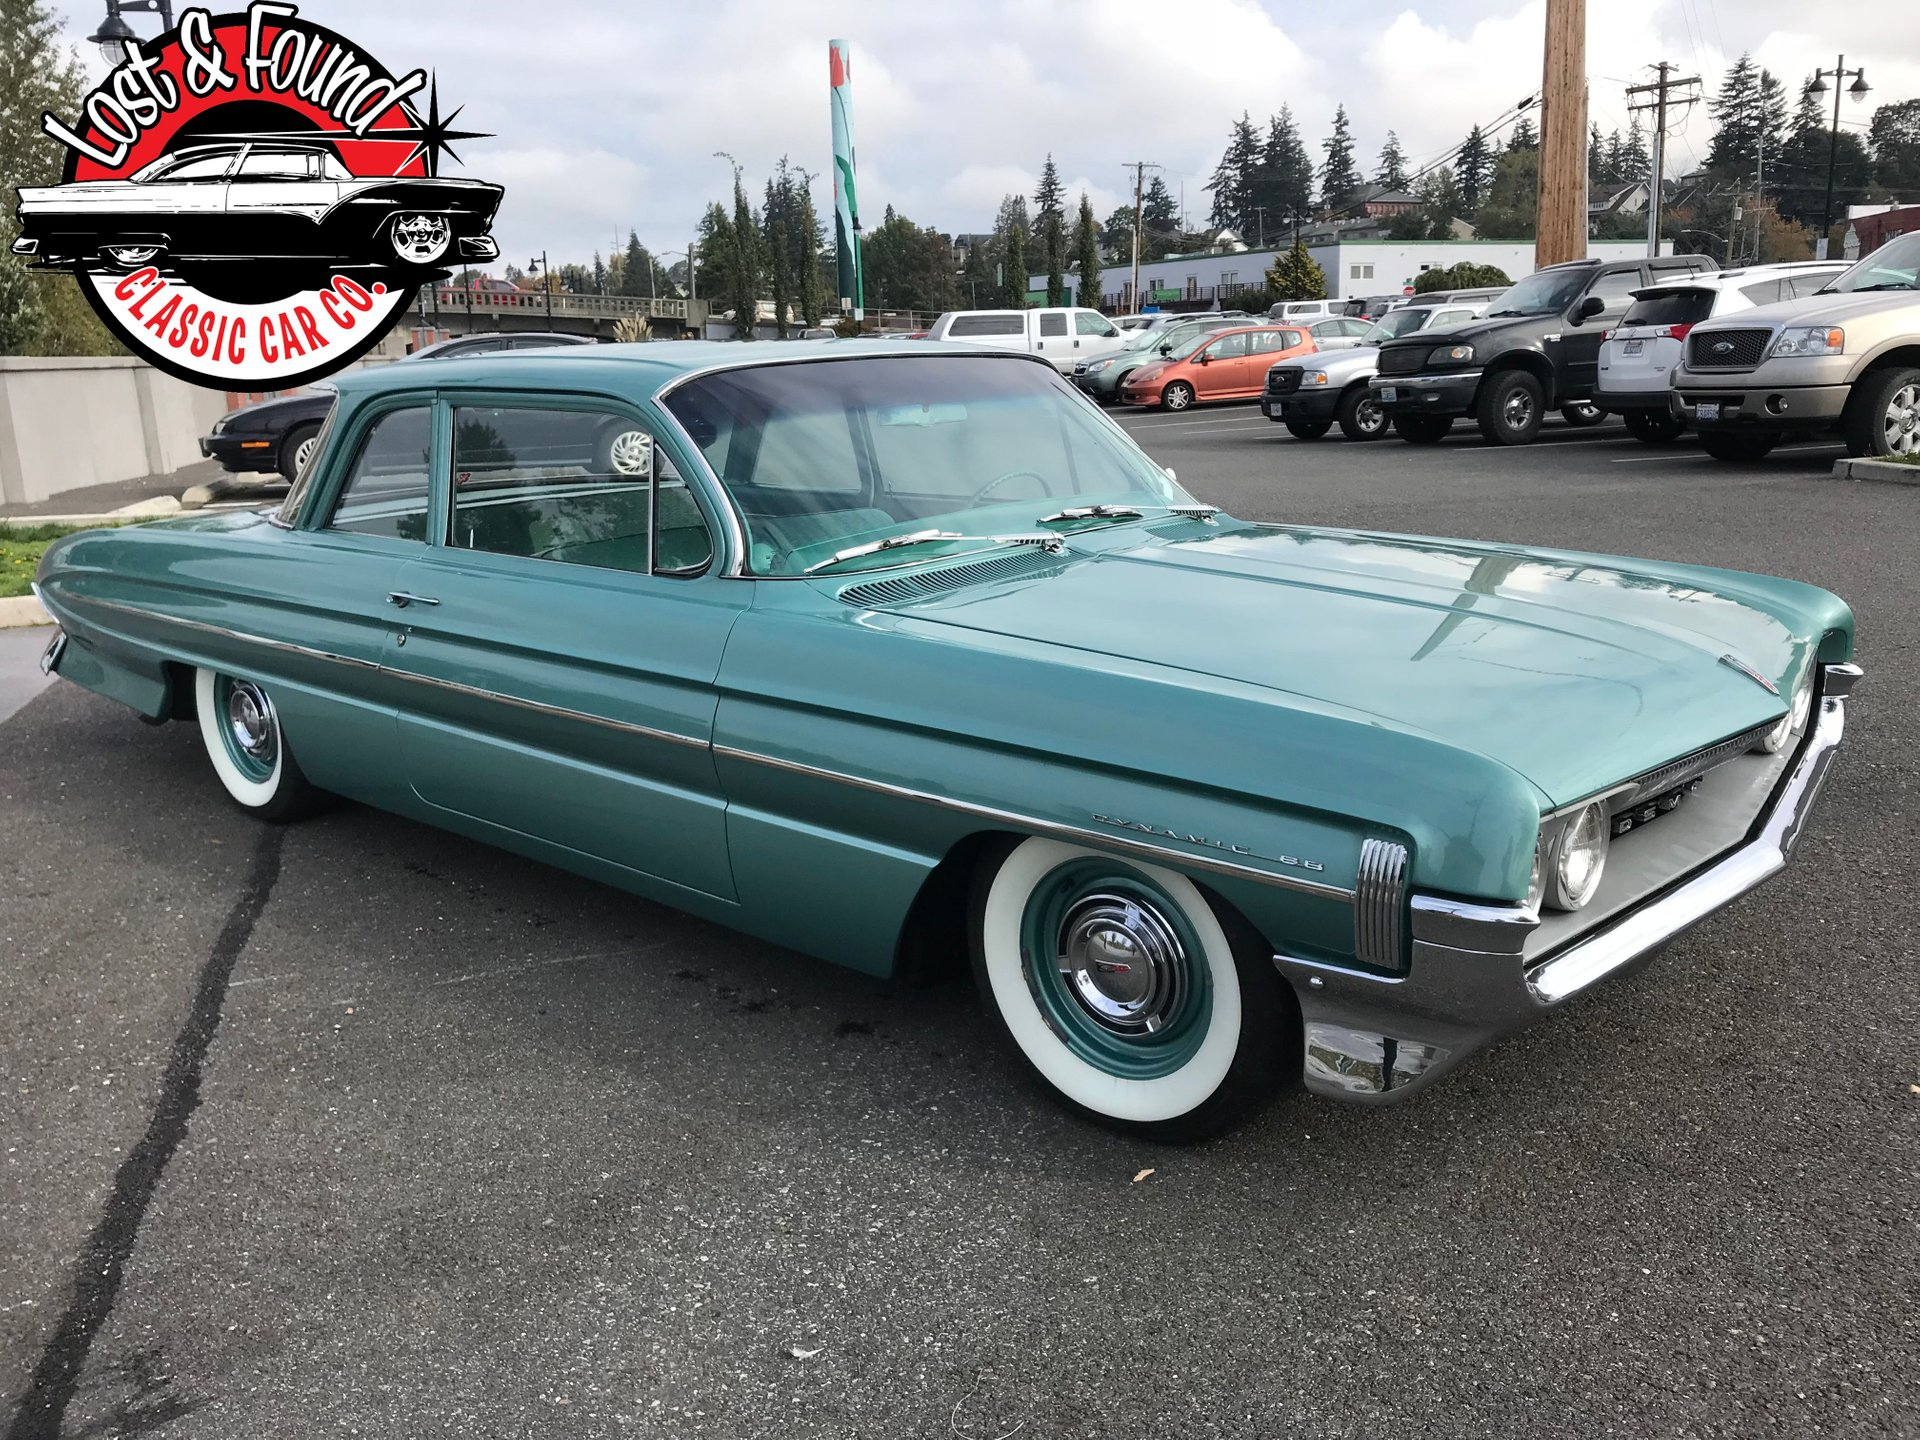 1961 Oldsmobile Dynamic 88 Flat top for sale #103602 | MCG